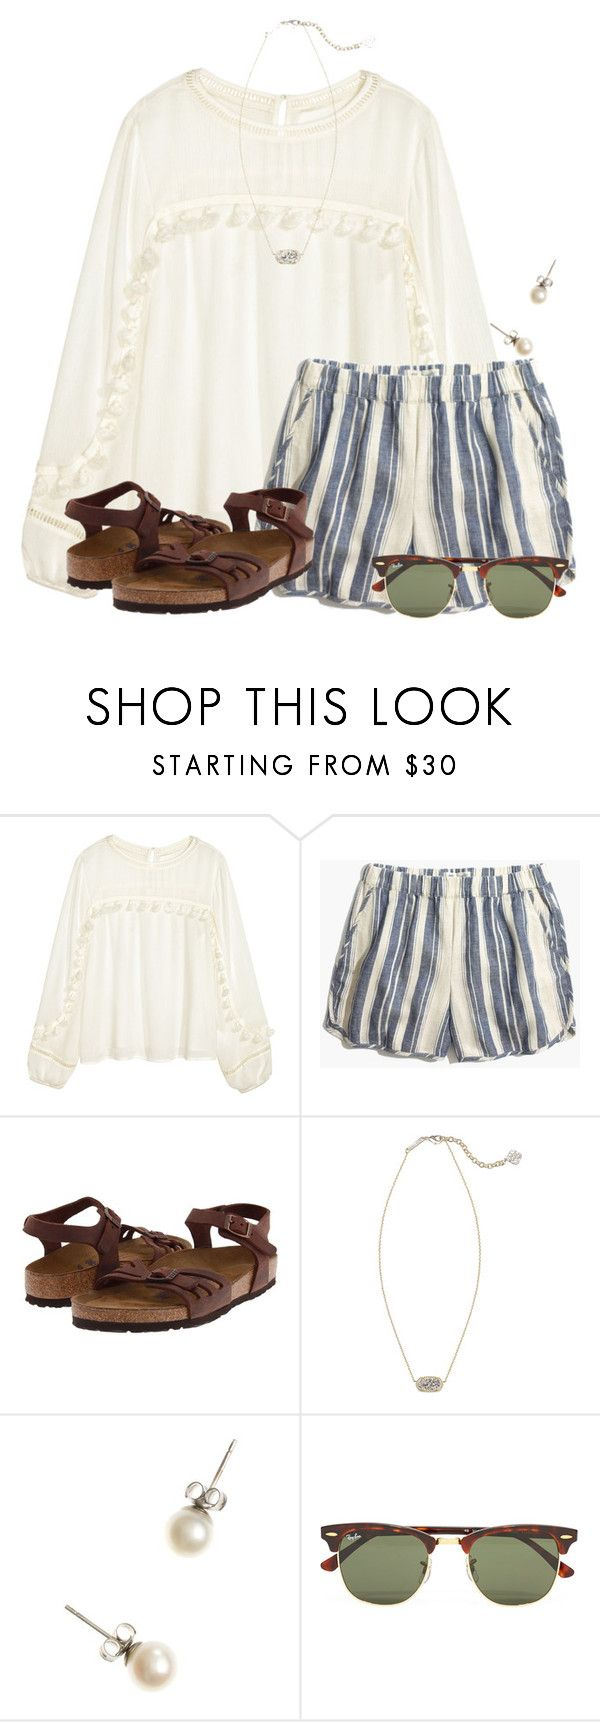 """""""~I really really want this outfit to wear at the beach~"""" by flroasburn on Polyvore featuring H&M, Madewell, Birkenstock, Kendra Scott, J.Crew and Ray-Ban"""